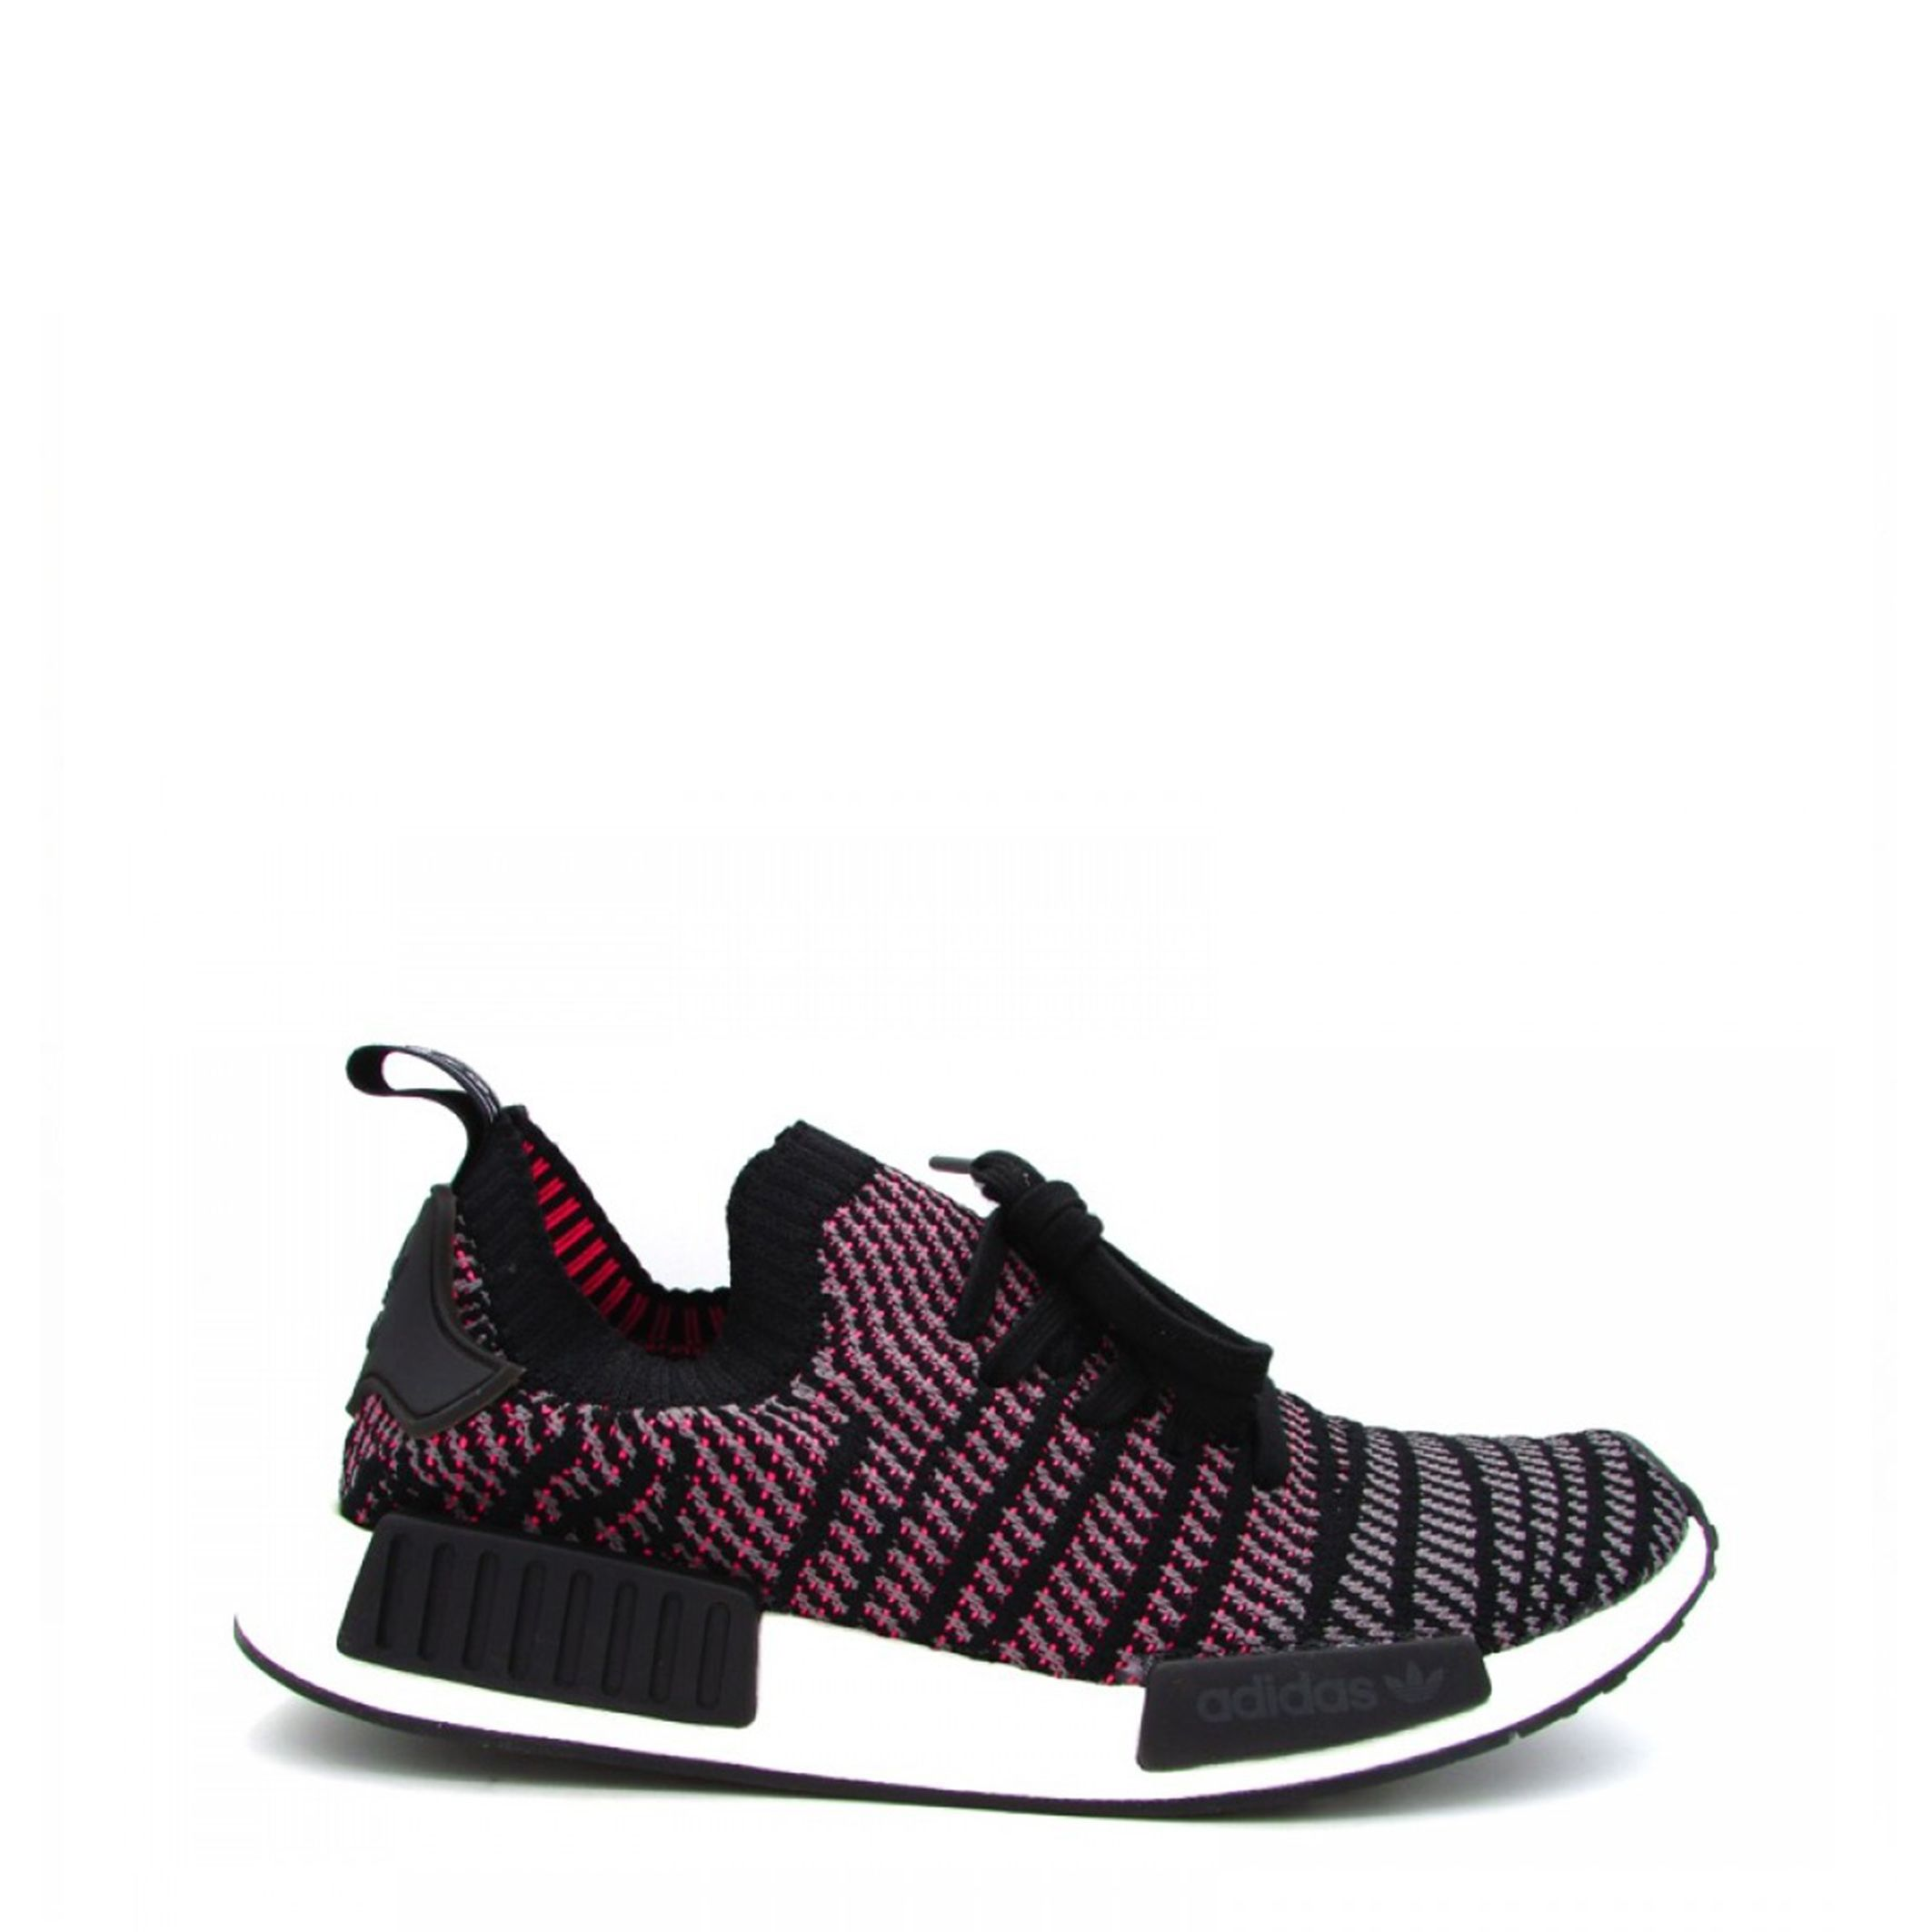 Adidas Nmd R1 Stlt Shoes Sneakers Unisex In 2020 Adidas Nmd R1 Adidas Nmd Adidas Shoes Women